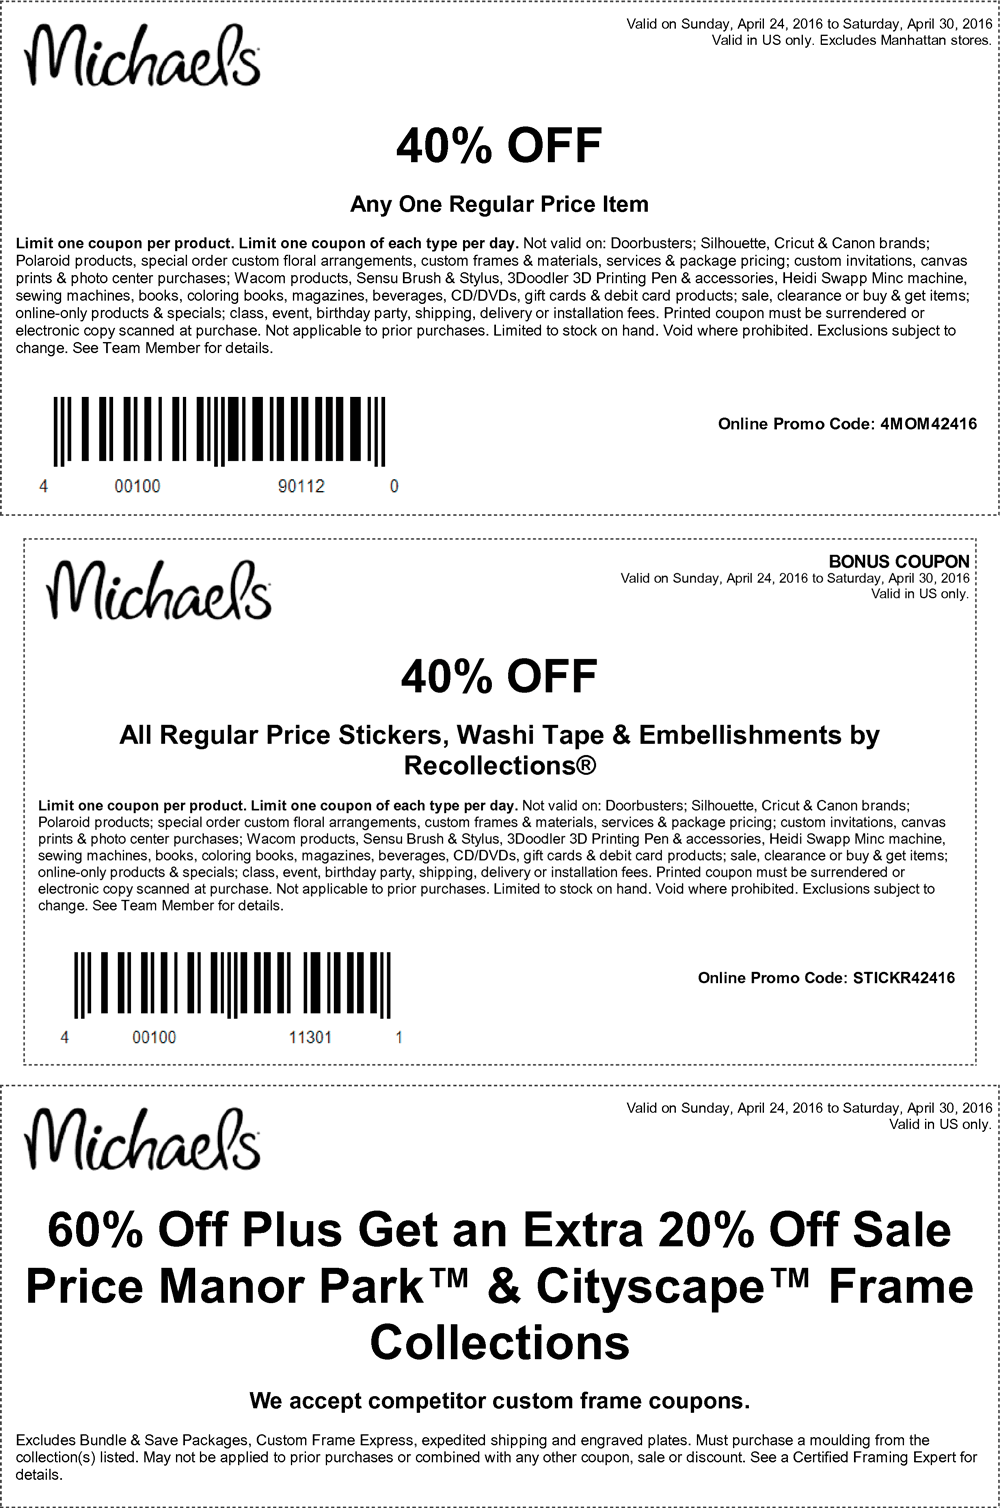 Michaels Coupon June 2017 40% off a single item at Michaels, or online via promo code 4MOM42416